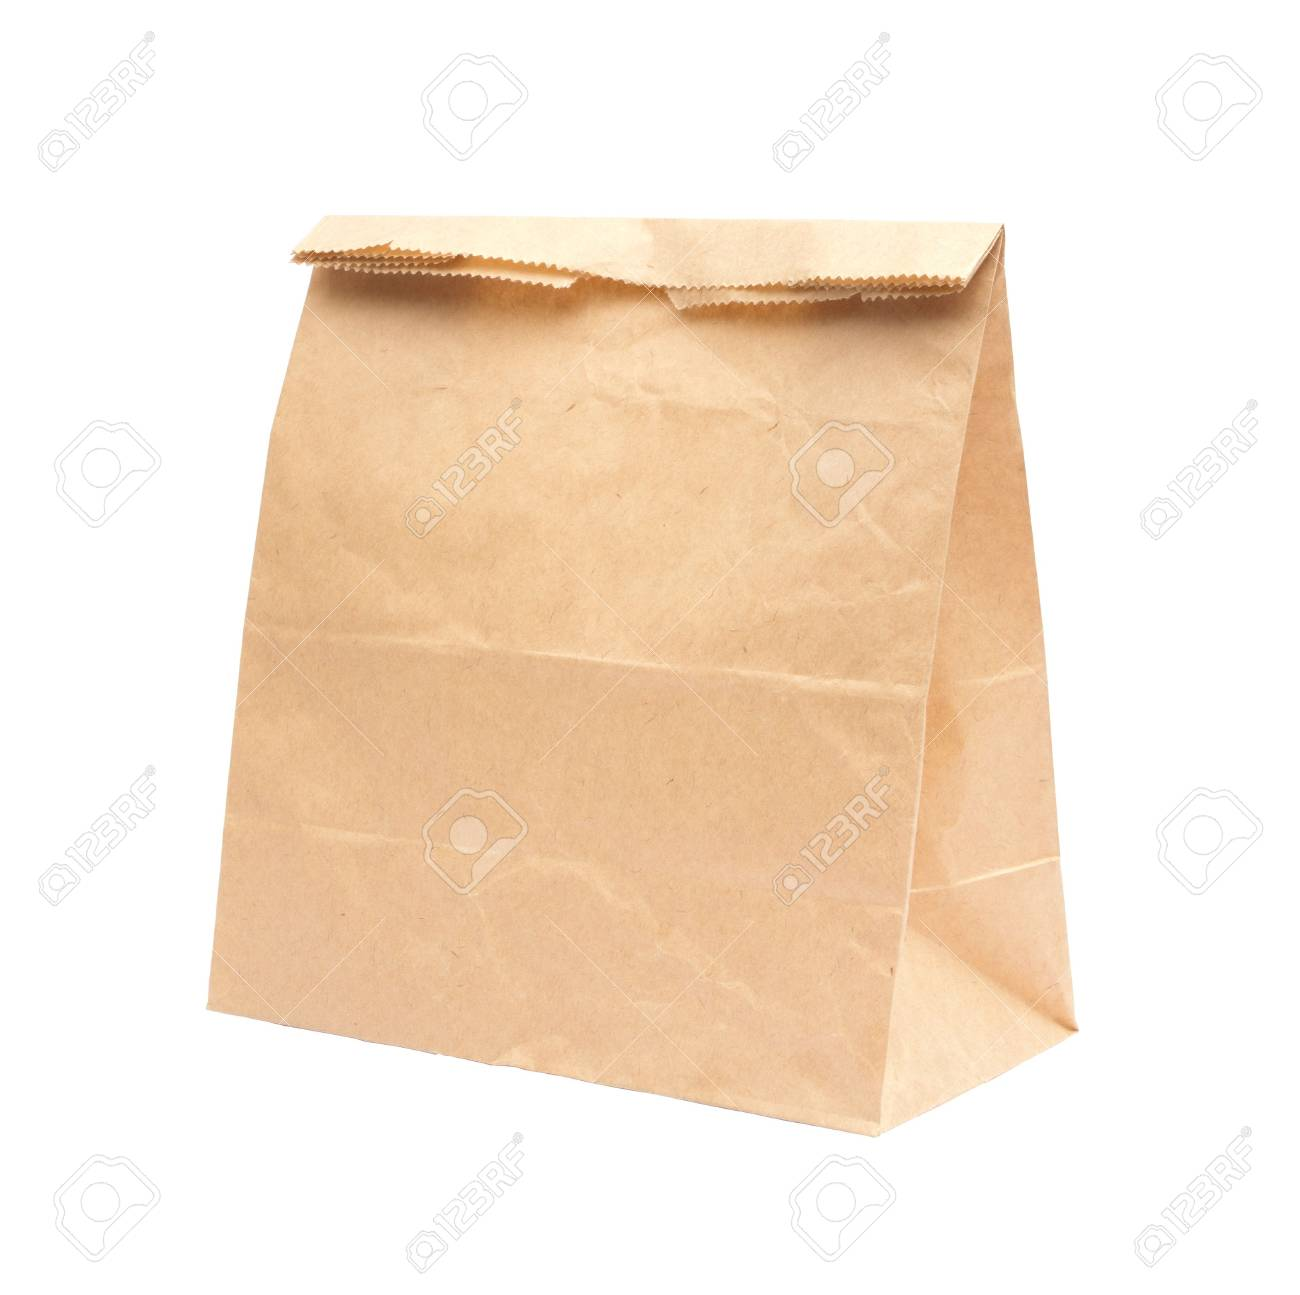 Recycled Shopping paper bag isolated on white background Stock Photo - 15115459